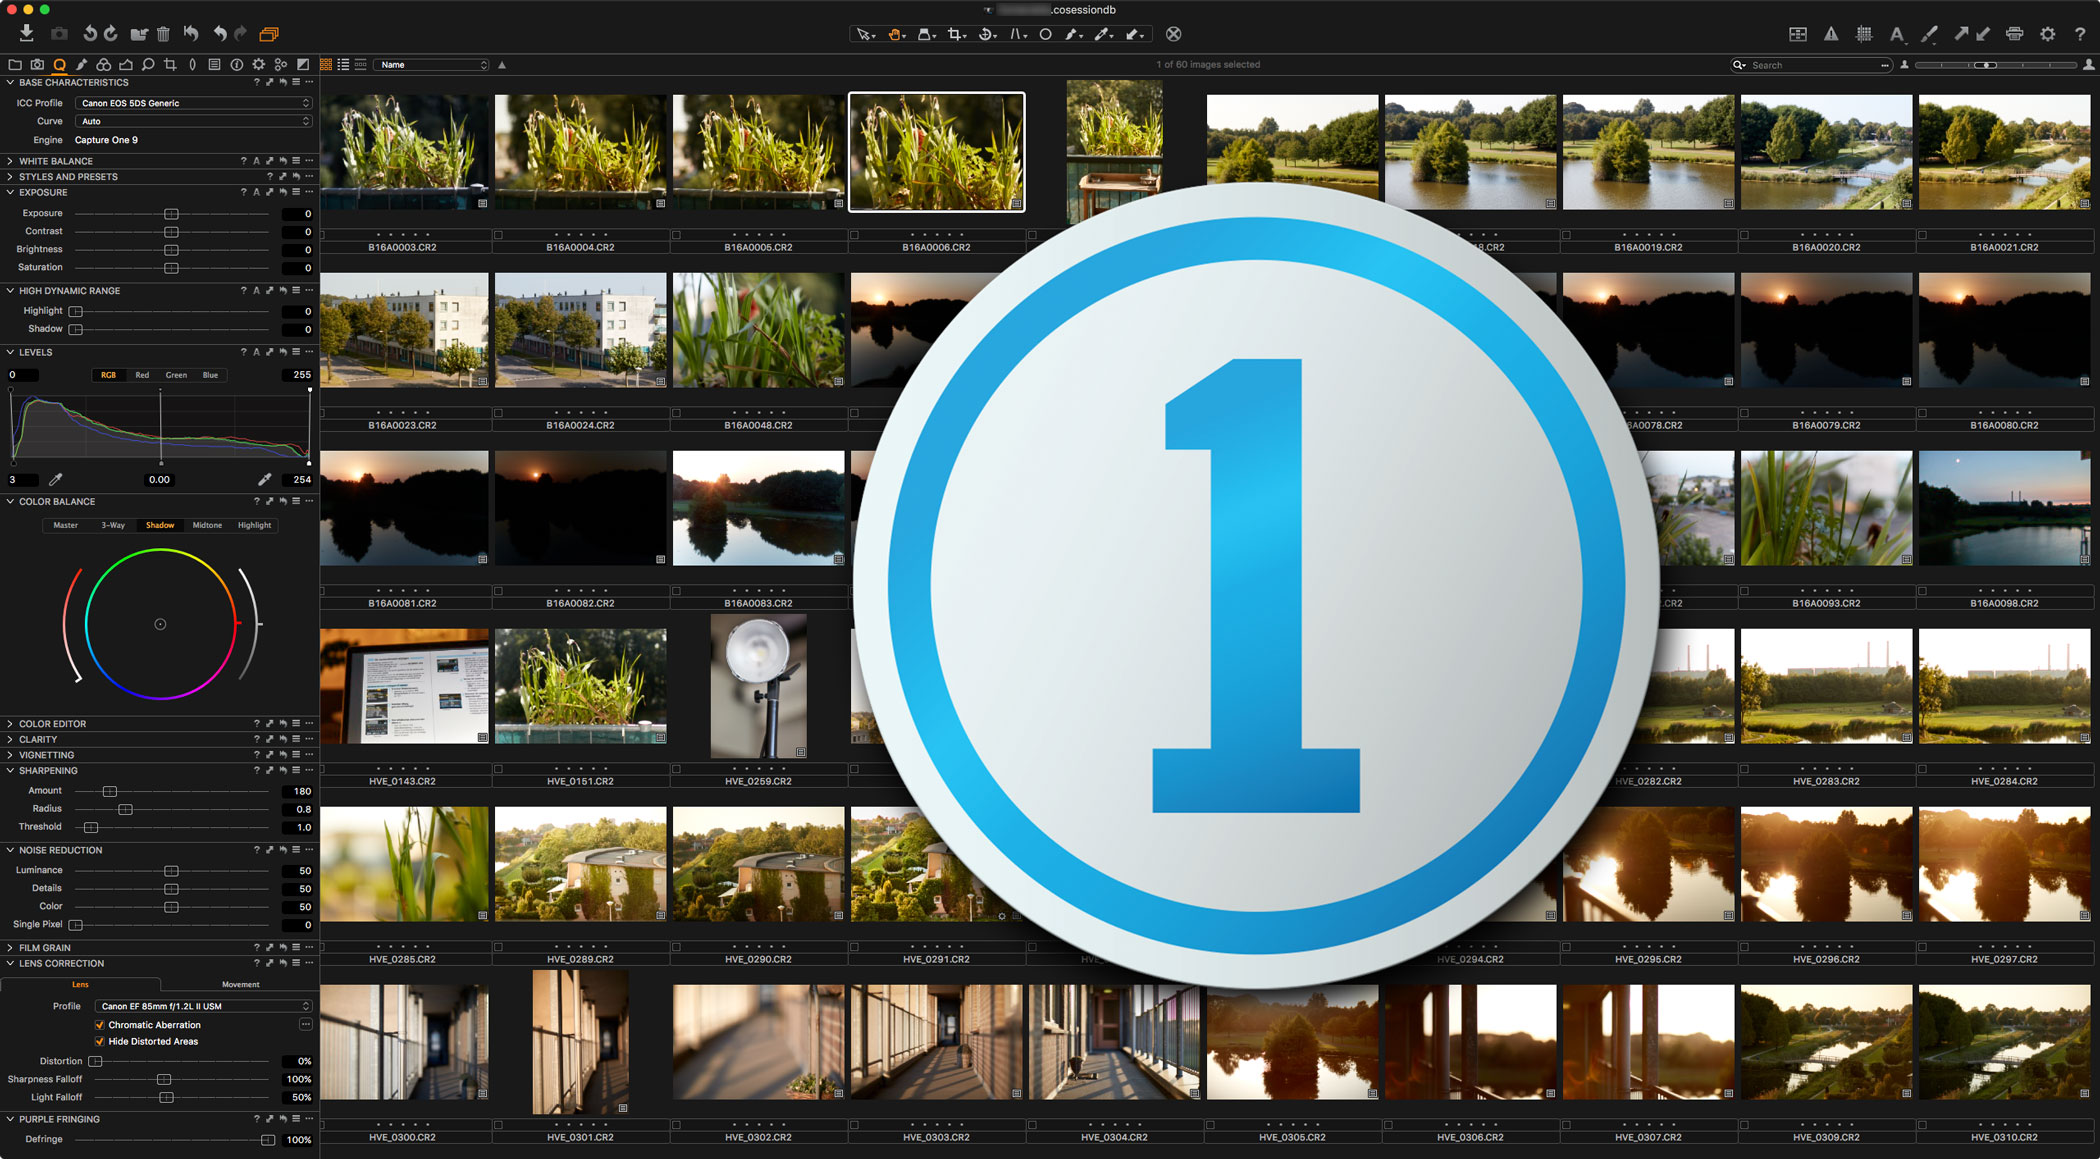 capture one 11 free download mac